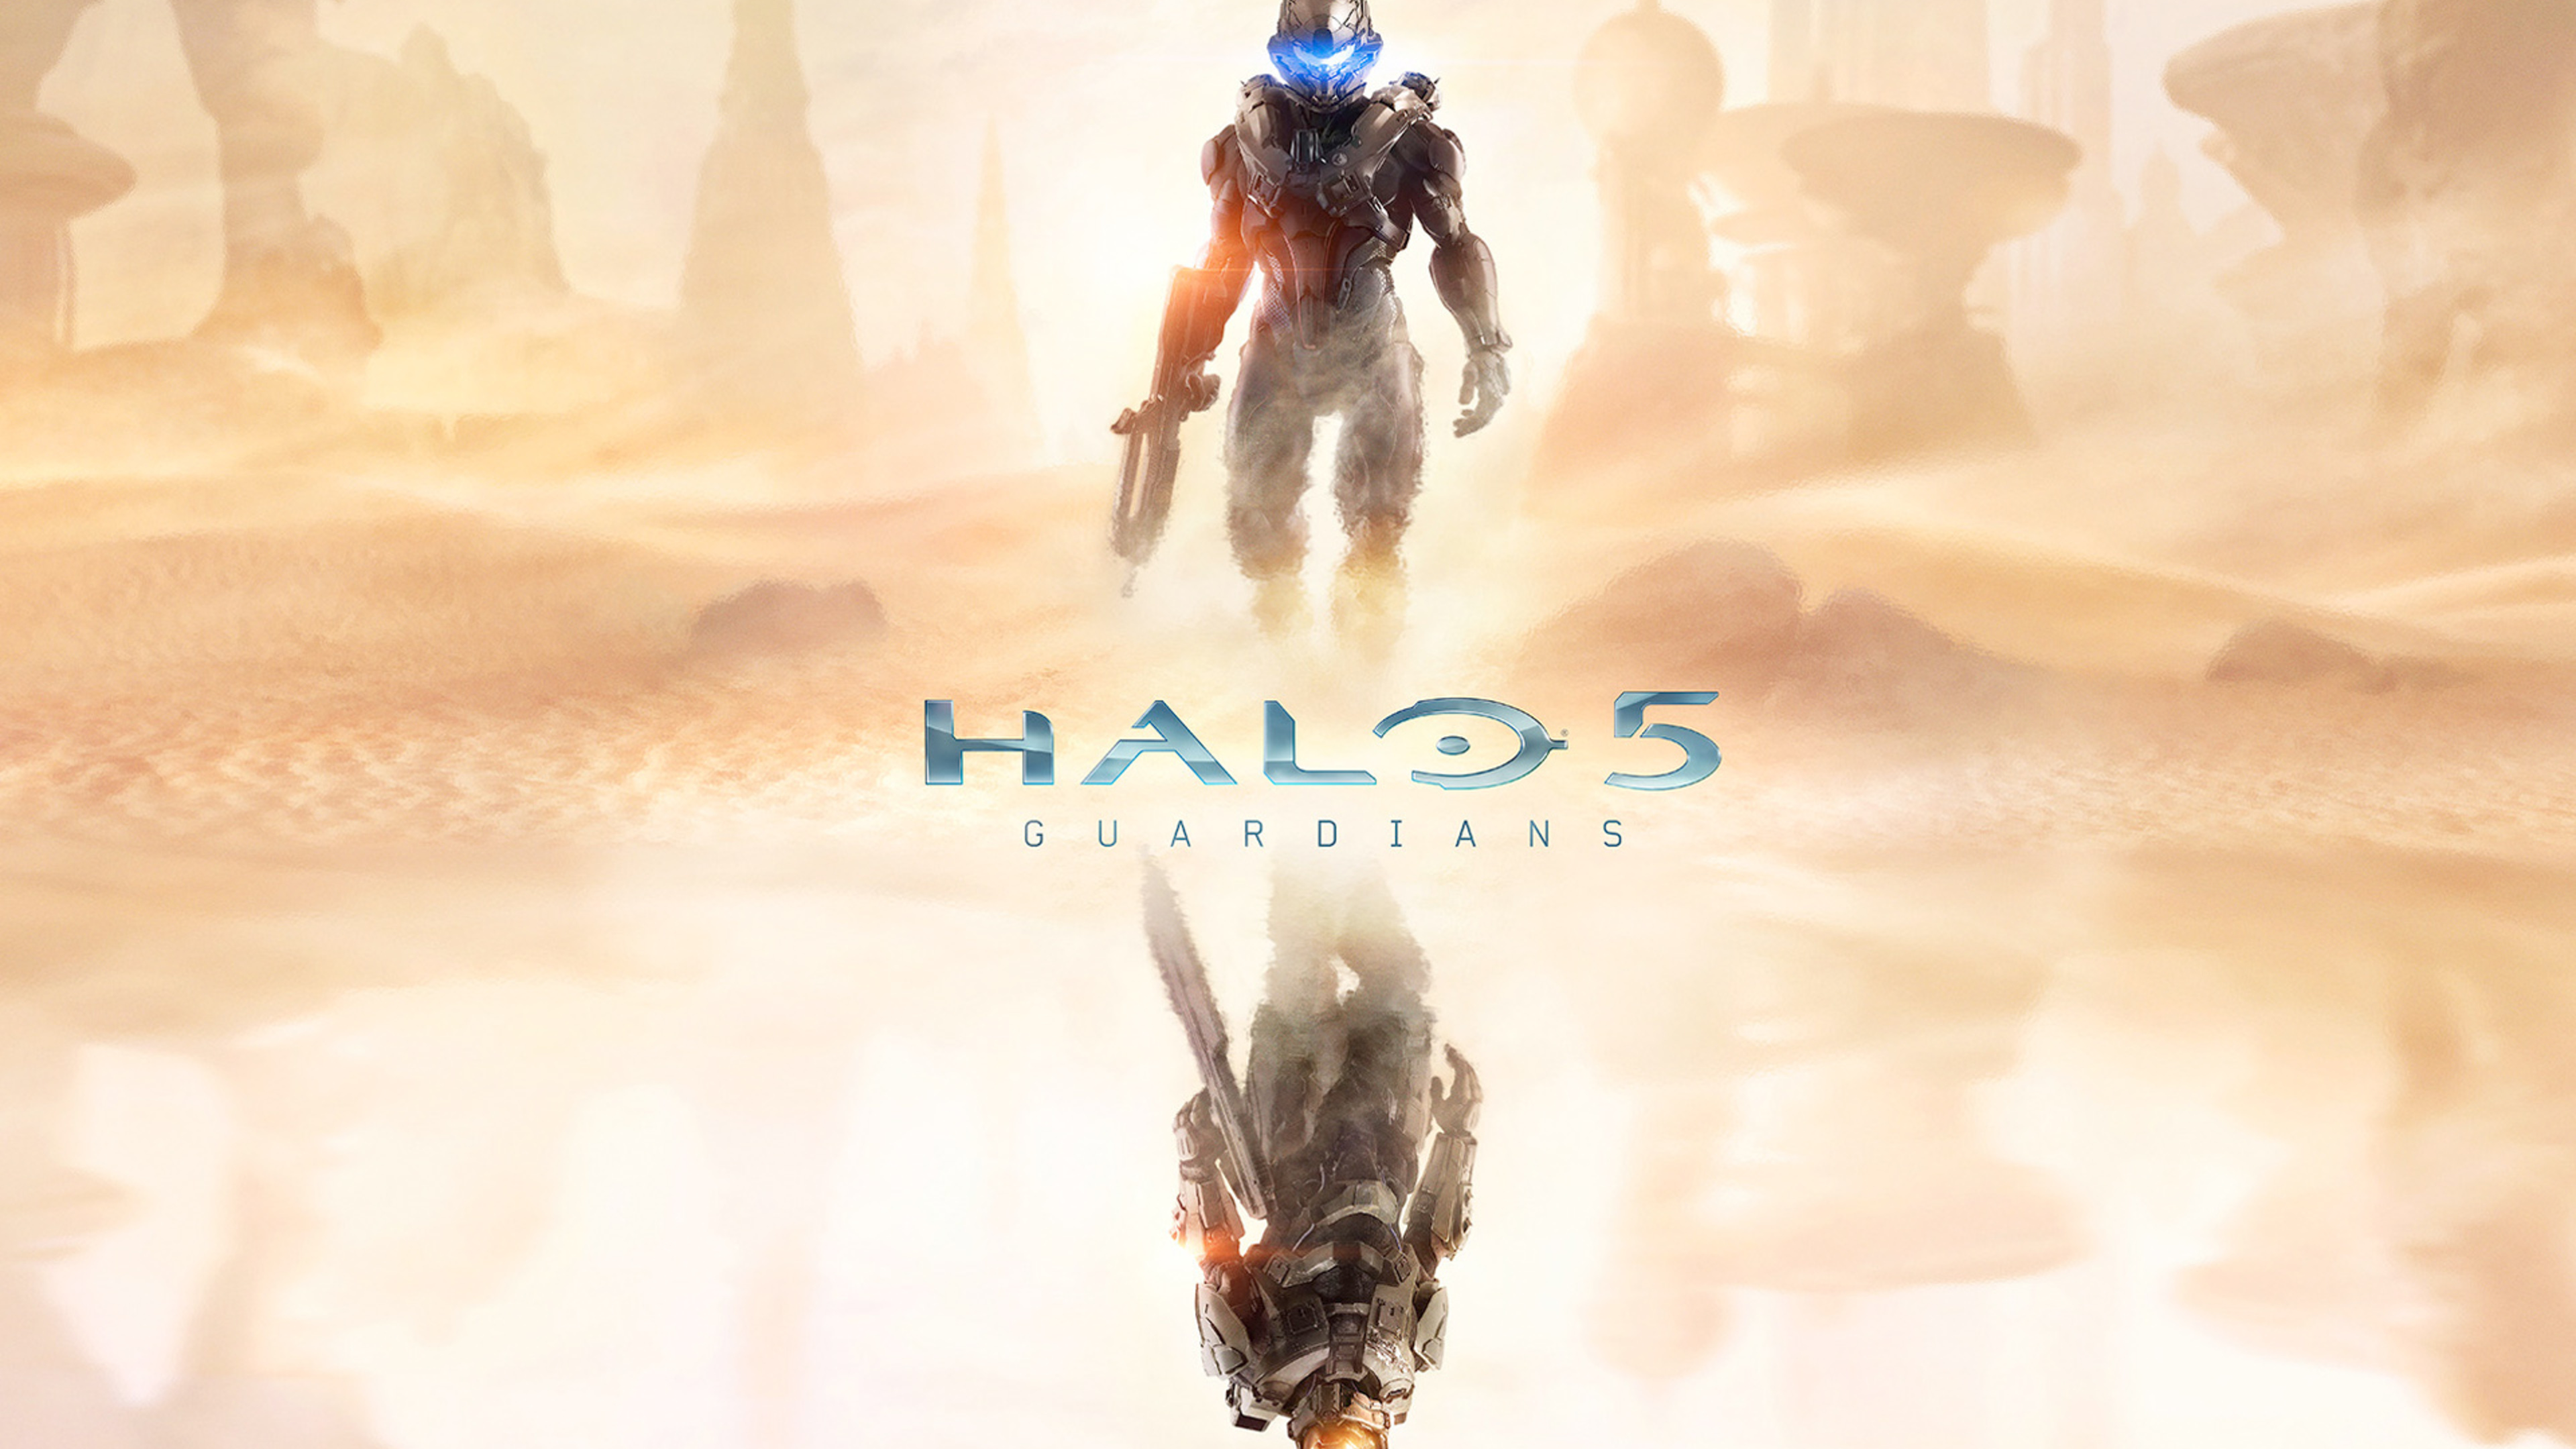 Halo 5 Guardians Wallpaper: Halo 5 Guardians 2015, HD Games, 4k Wallpapers, Images